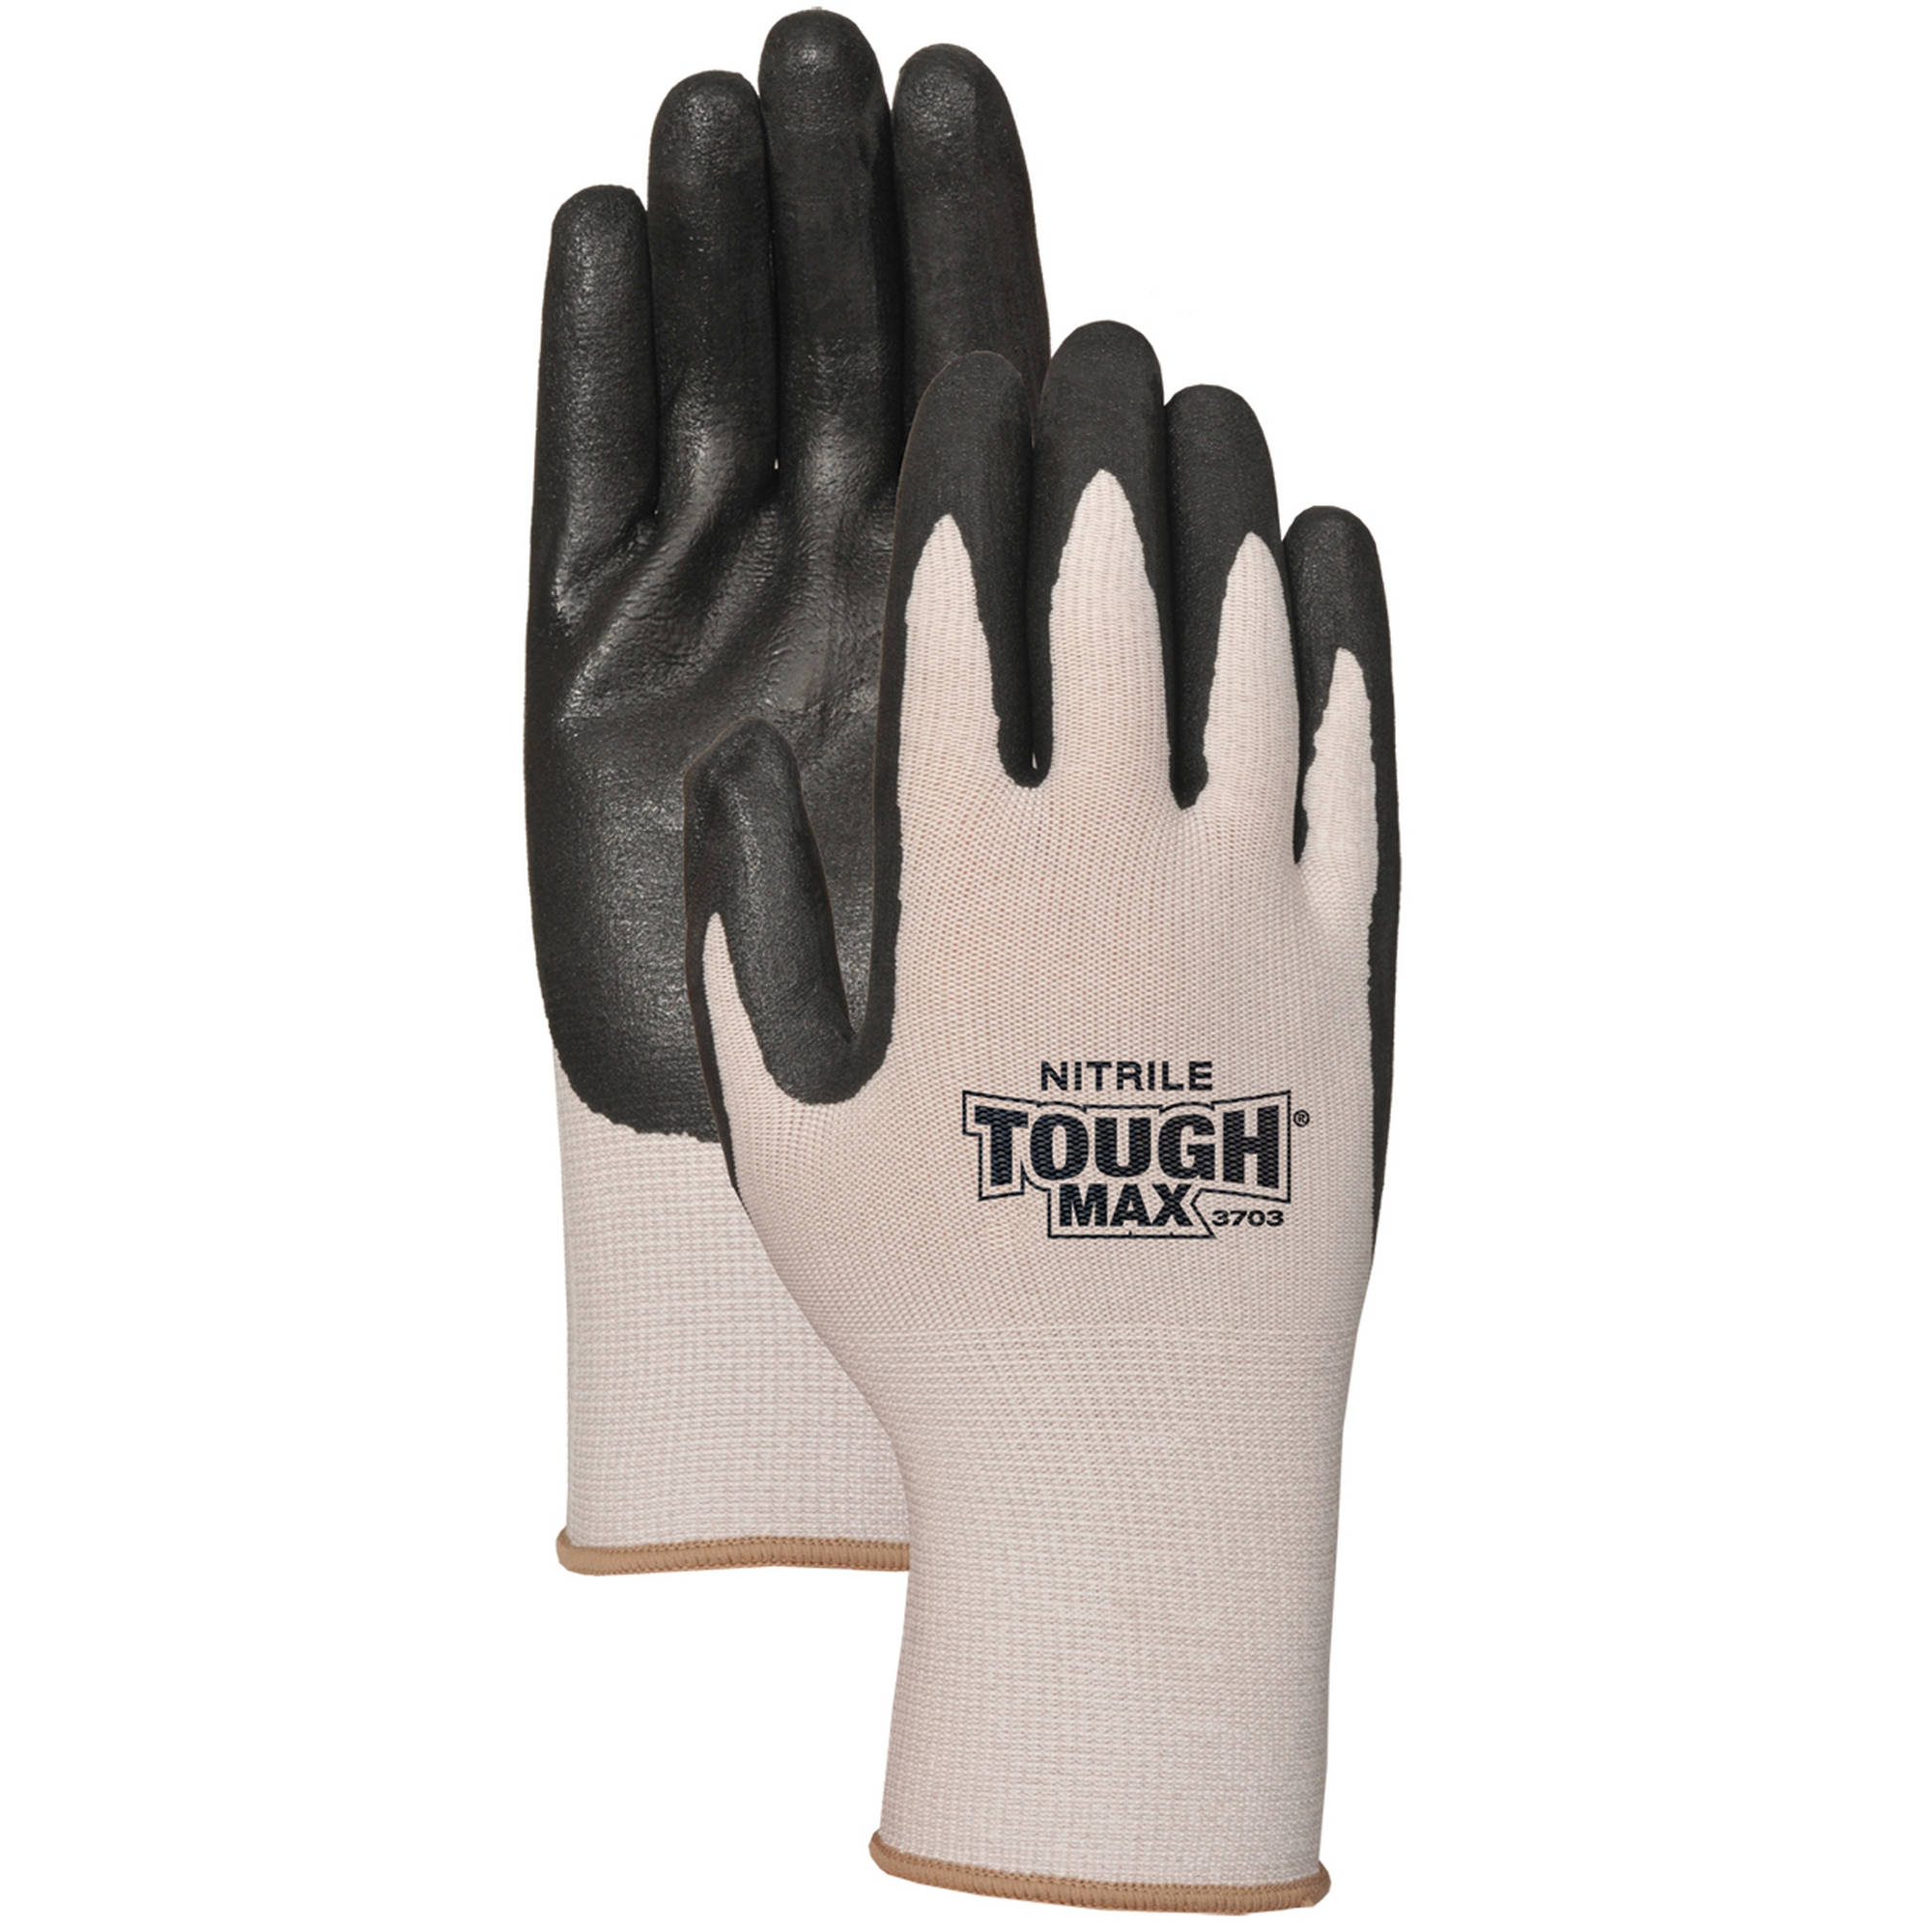 Bellingham Glove C3703M Medium Nitrile with Cool Max Gloves